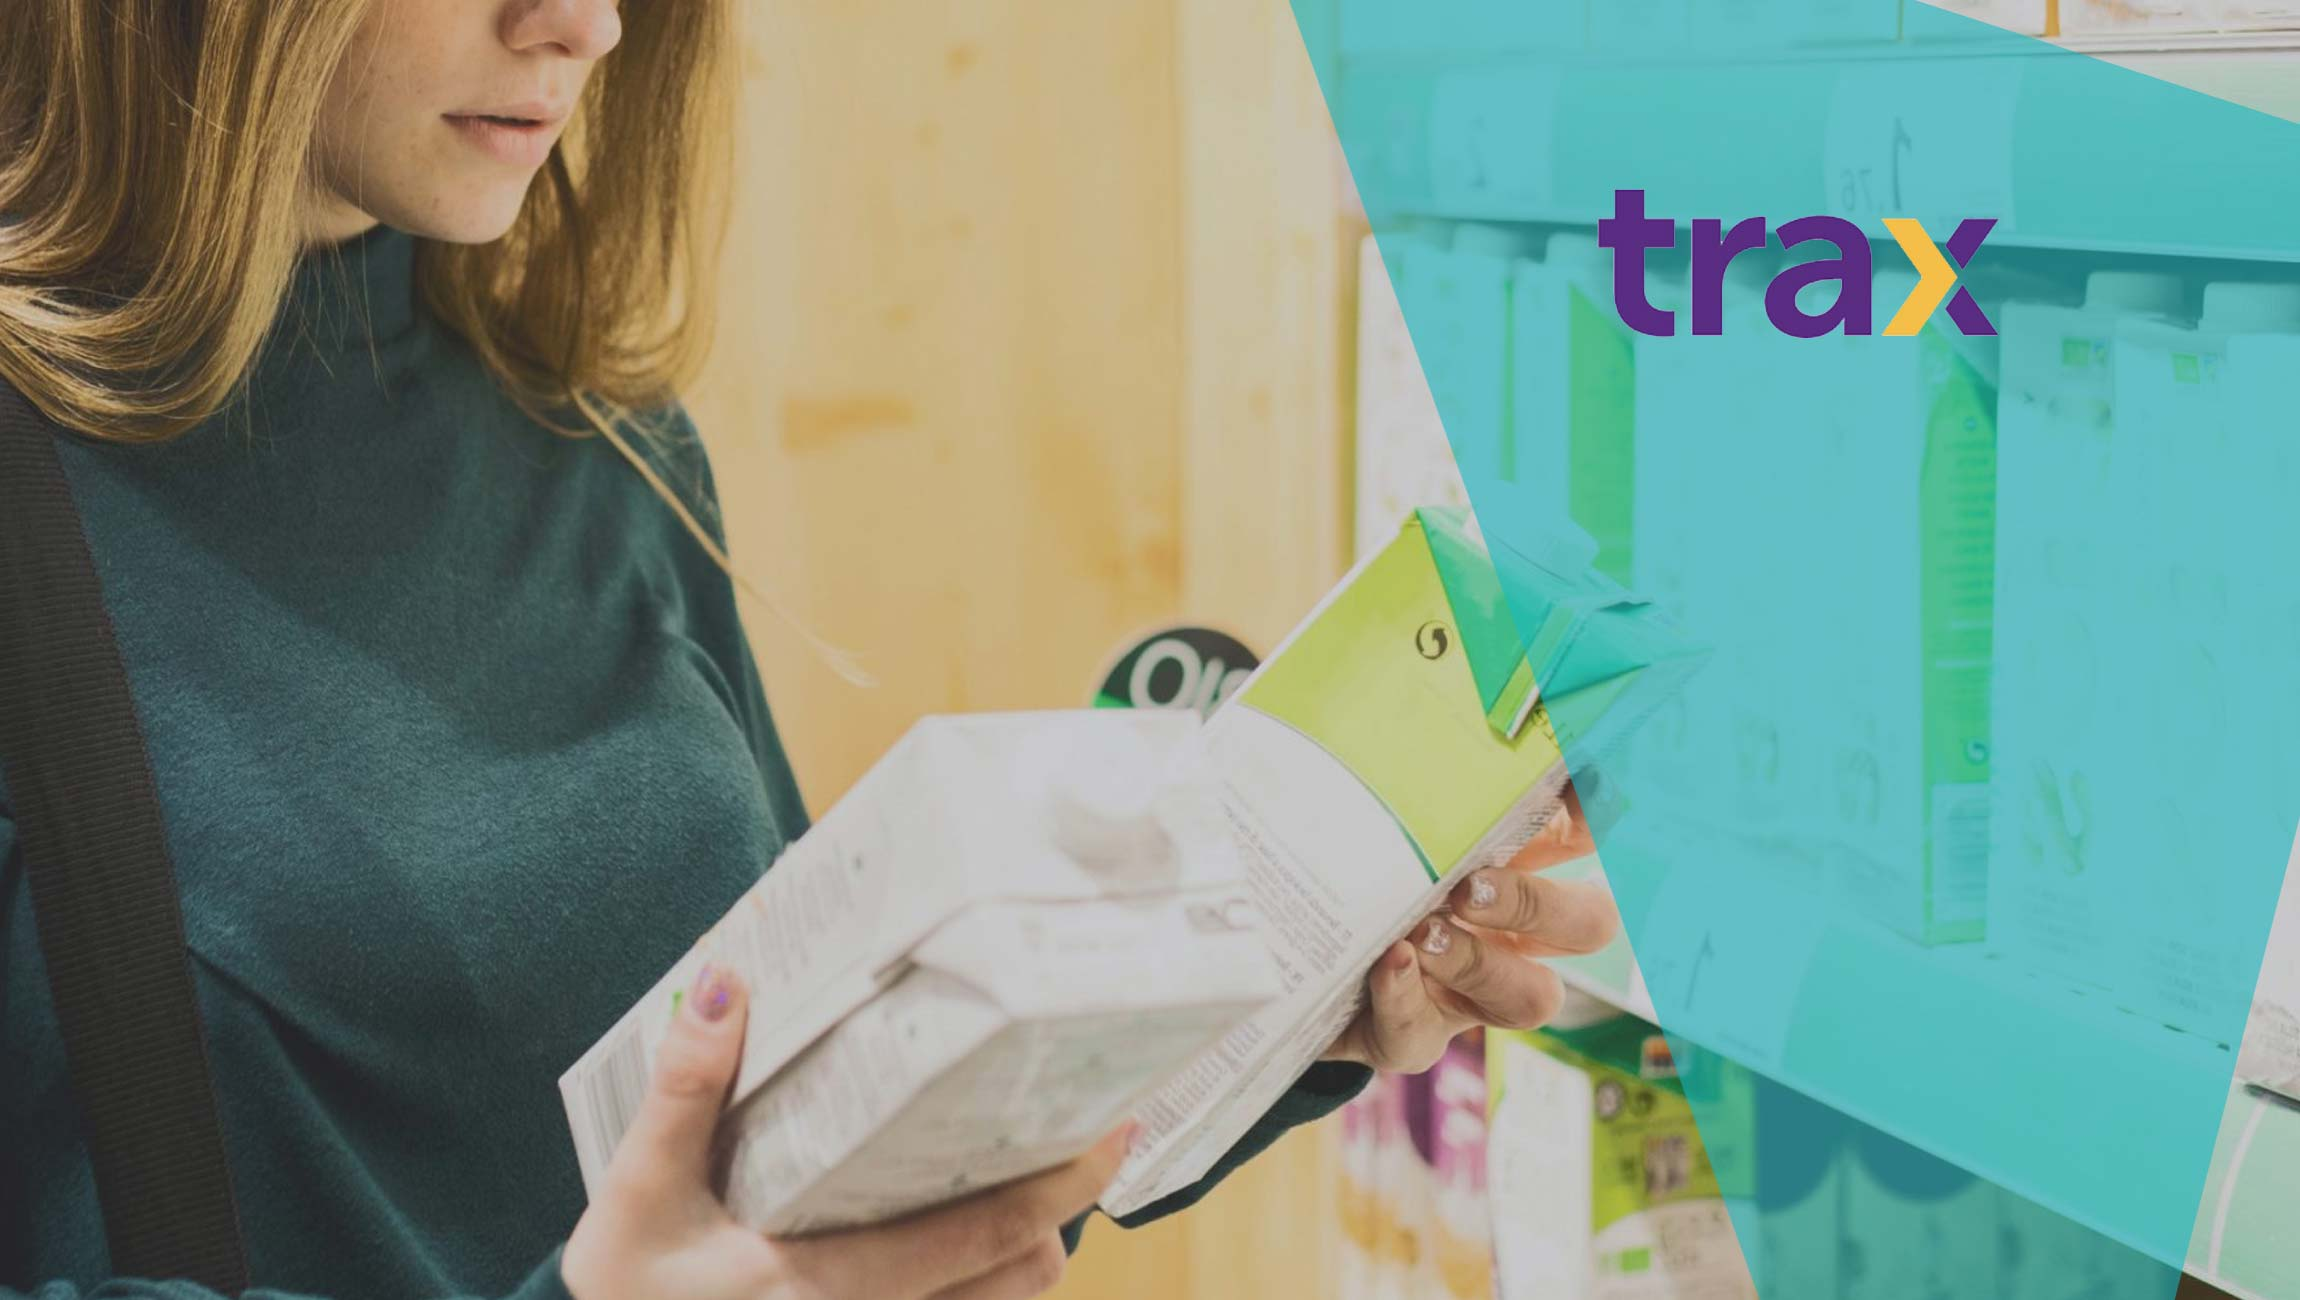 Trax Launches Retail Watch in Americas to Help Grocery Retailers Automate In-Store Data Collection and Optimize Operations 6